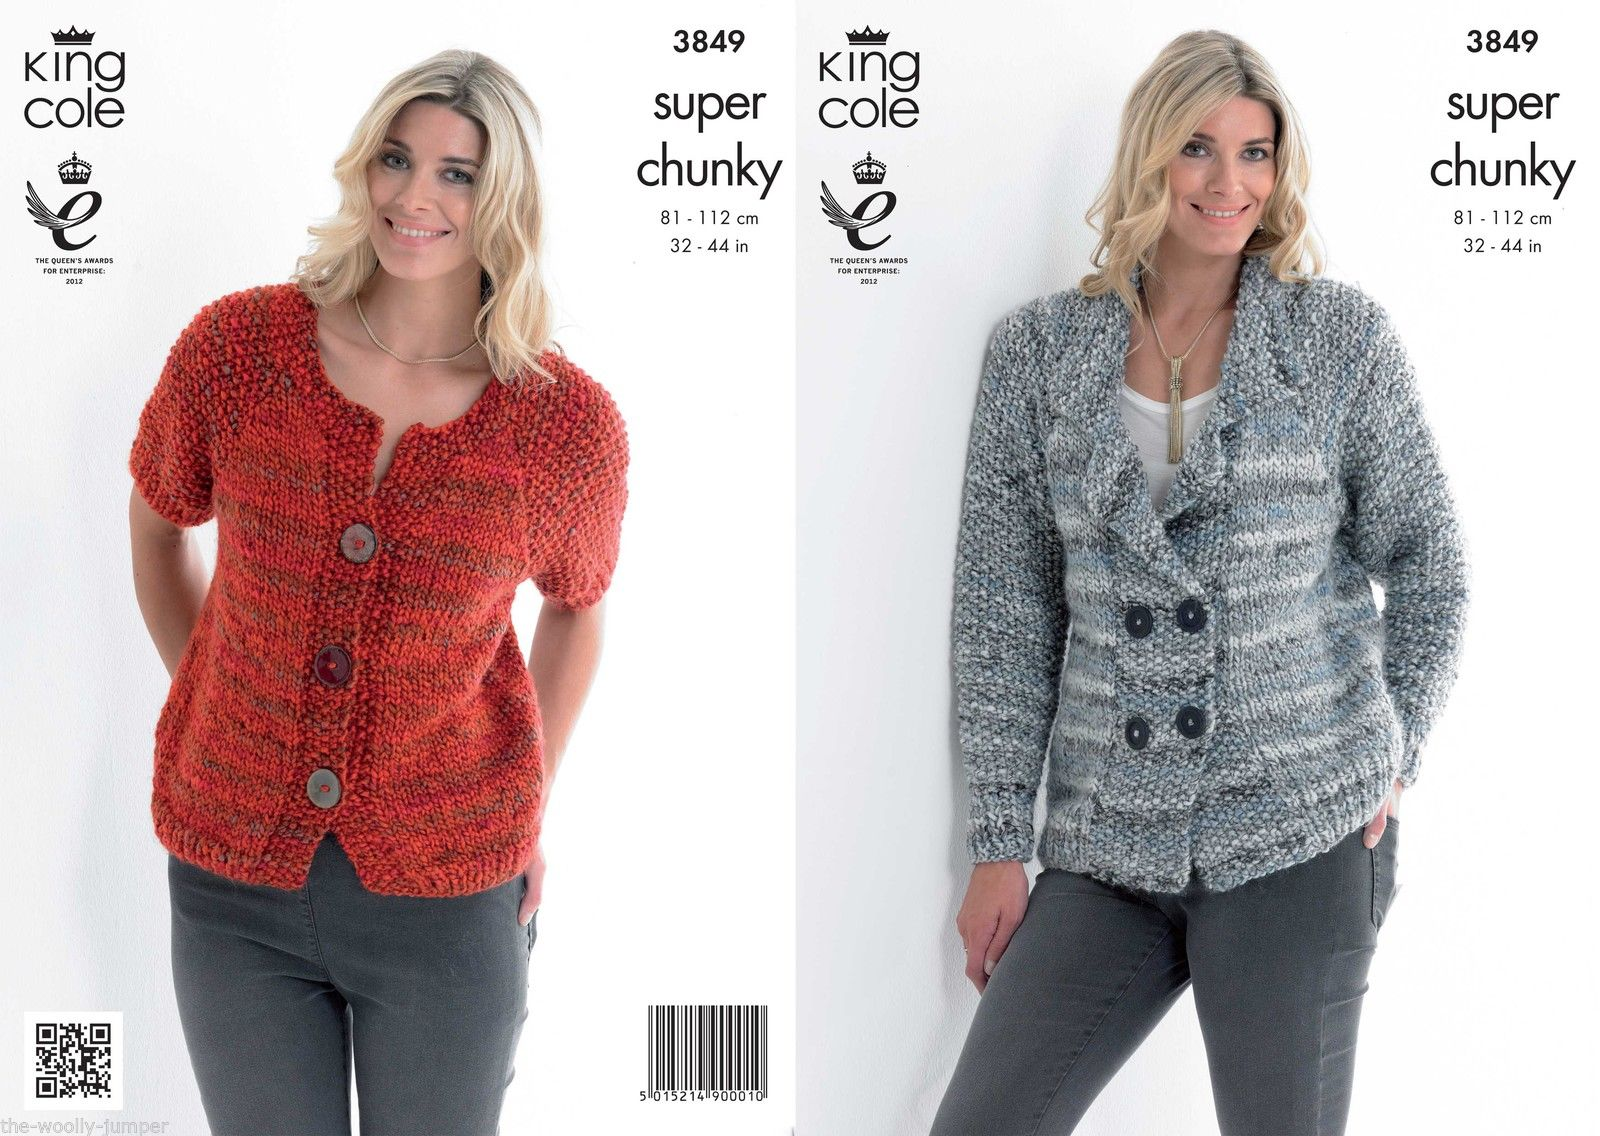 3849 - KING COLE GYPSY SUPER CHUNKY JACKET & CARDIGAN KNITTING ...